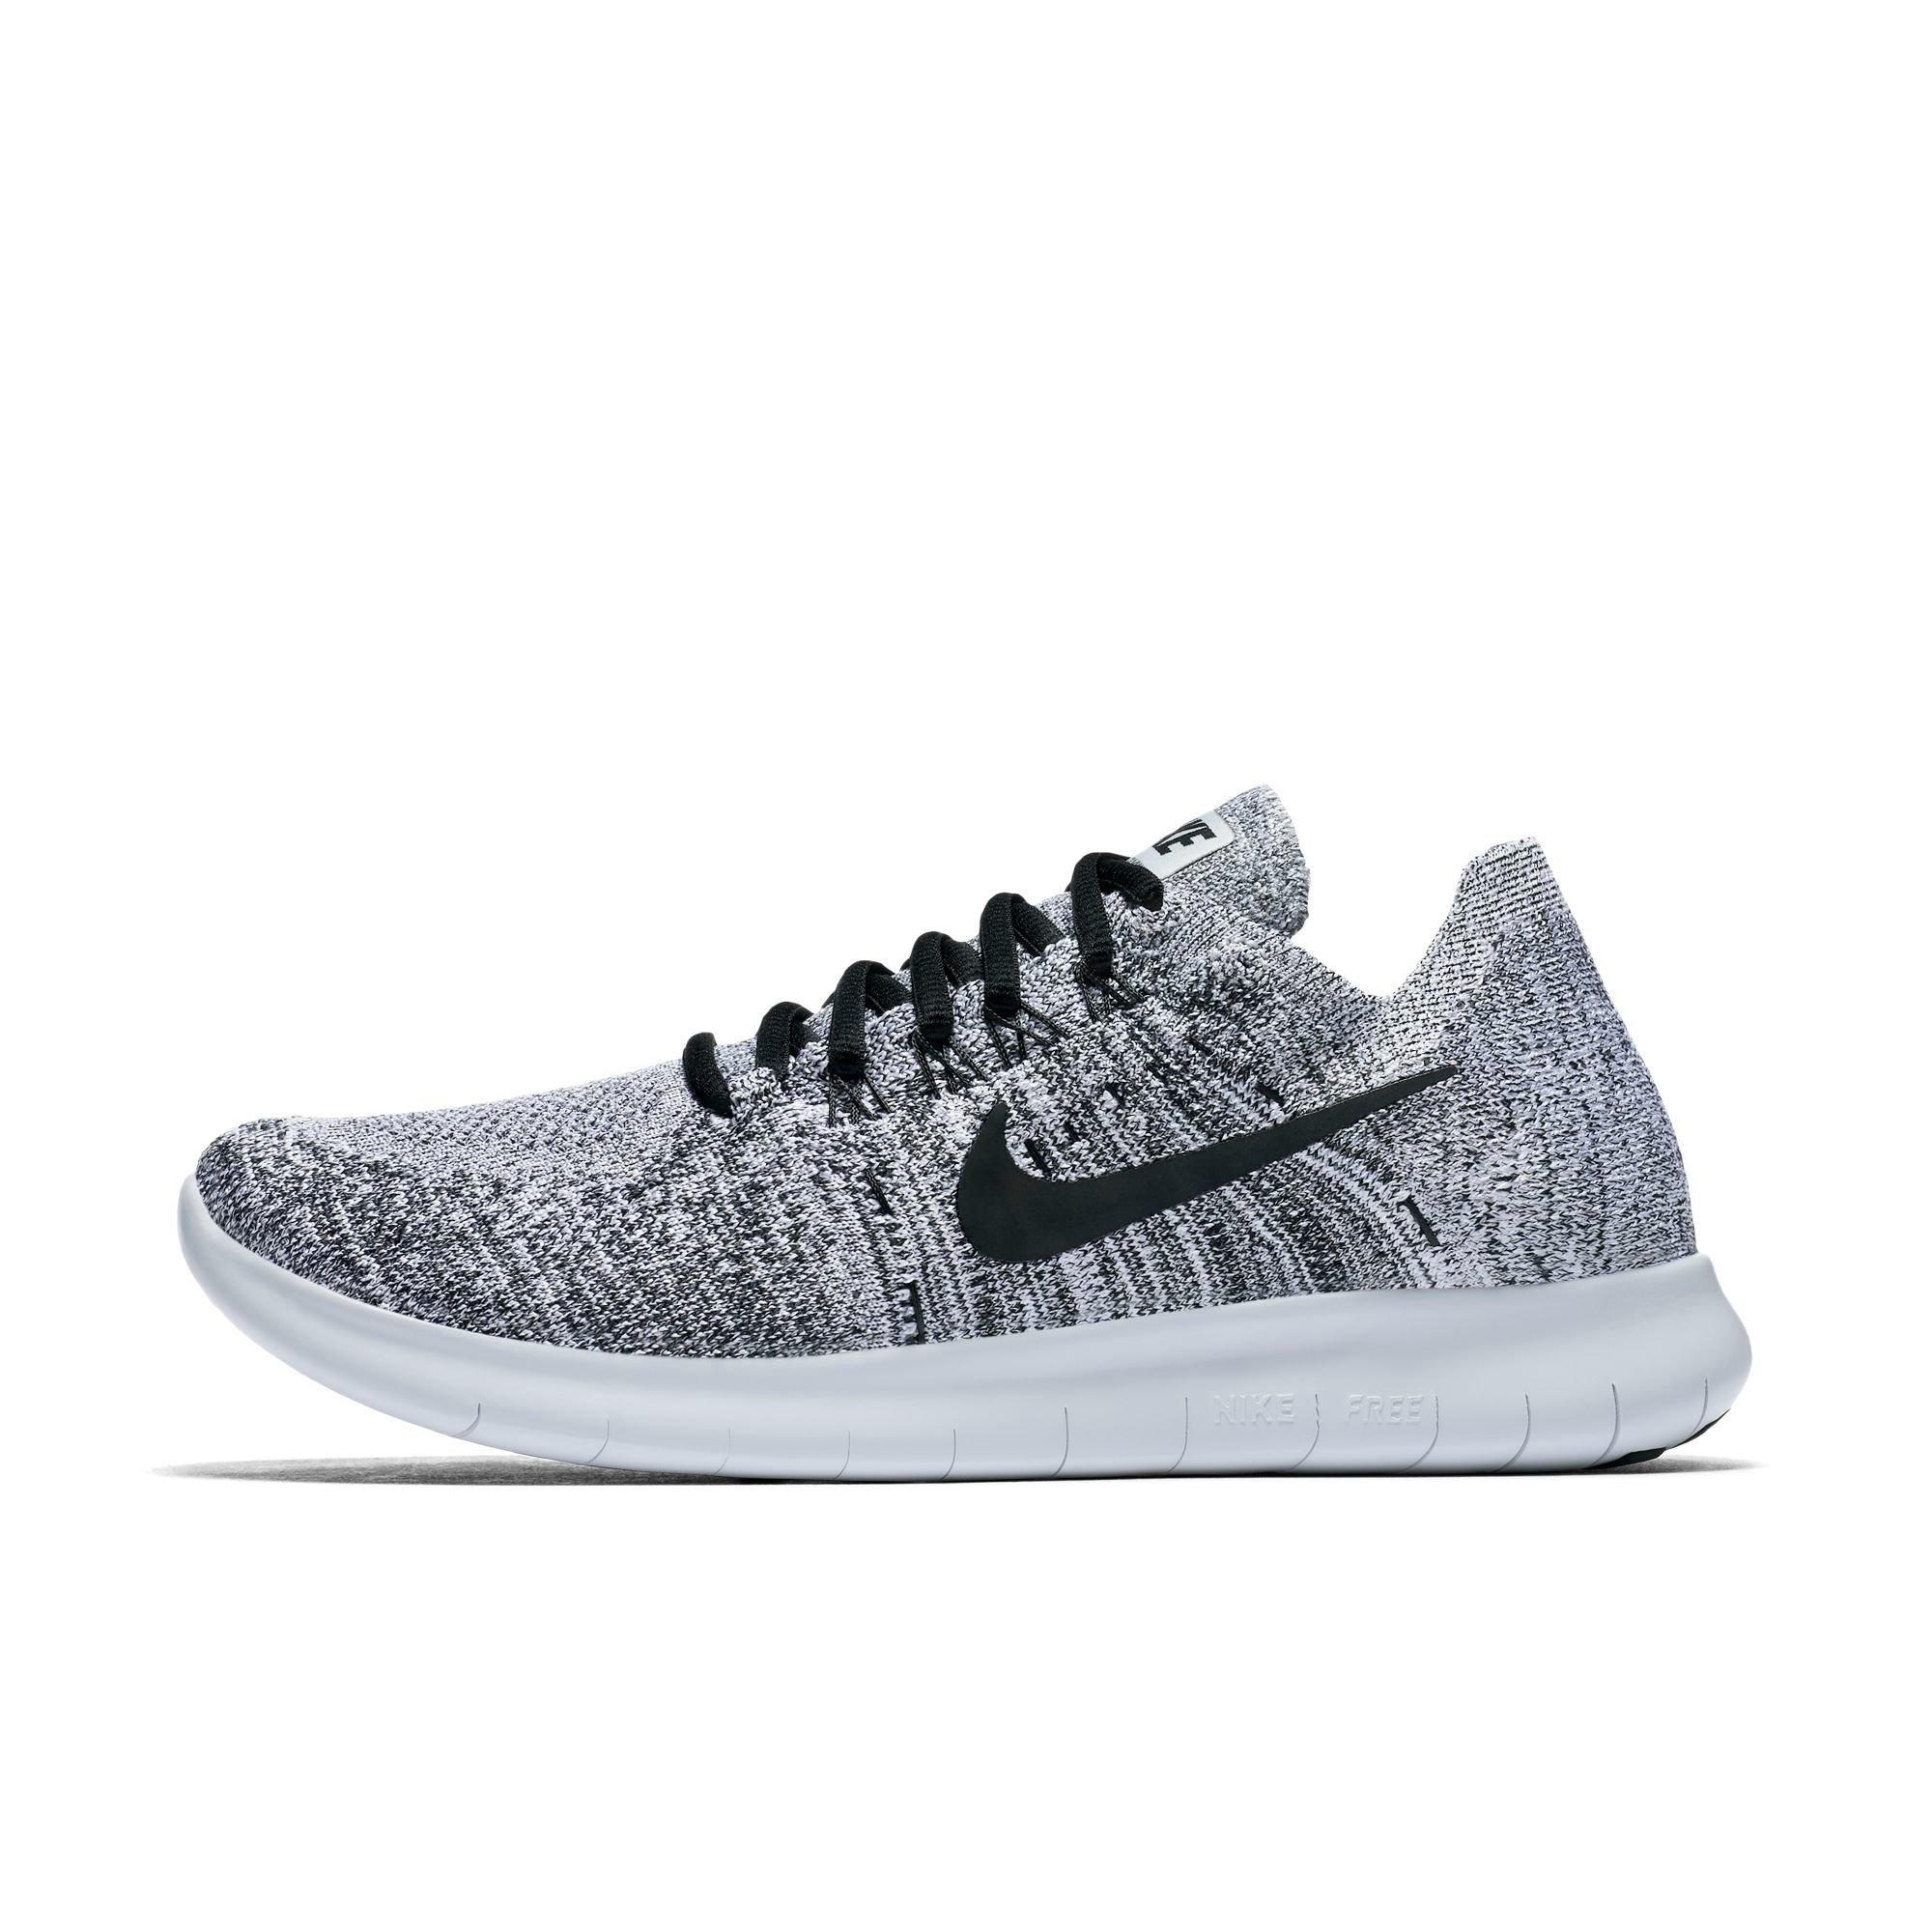 aa886373fab2b Nike Free Run 2 Black Gray Womens Running Shoes Find great deals on online  for nike 6.0 zoom mogan ...